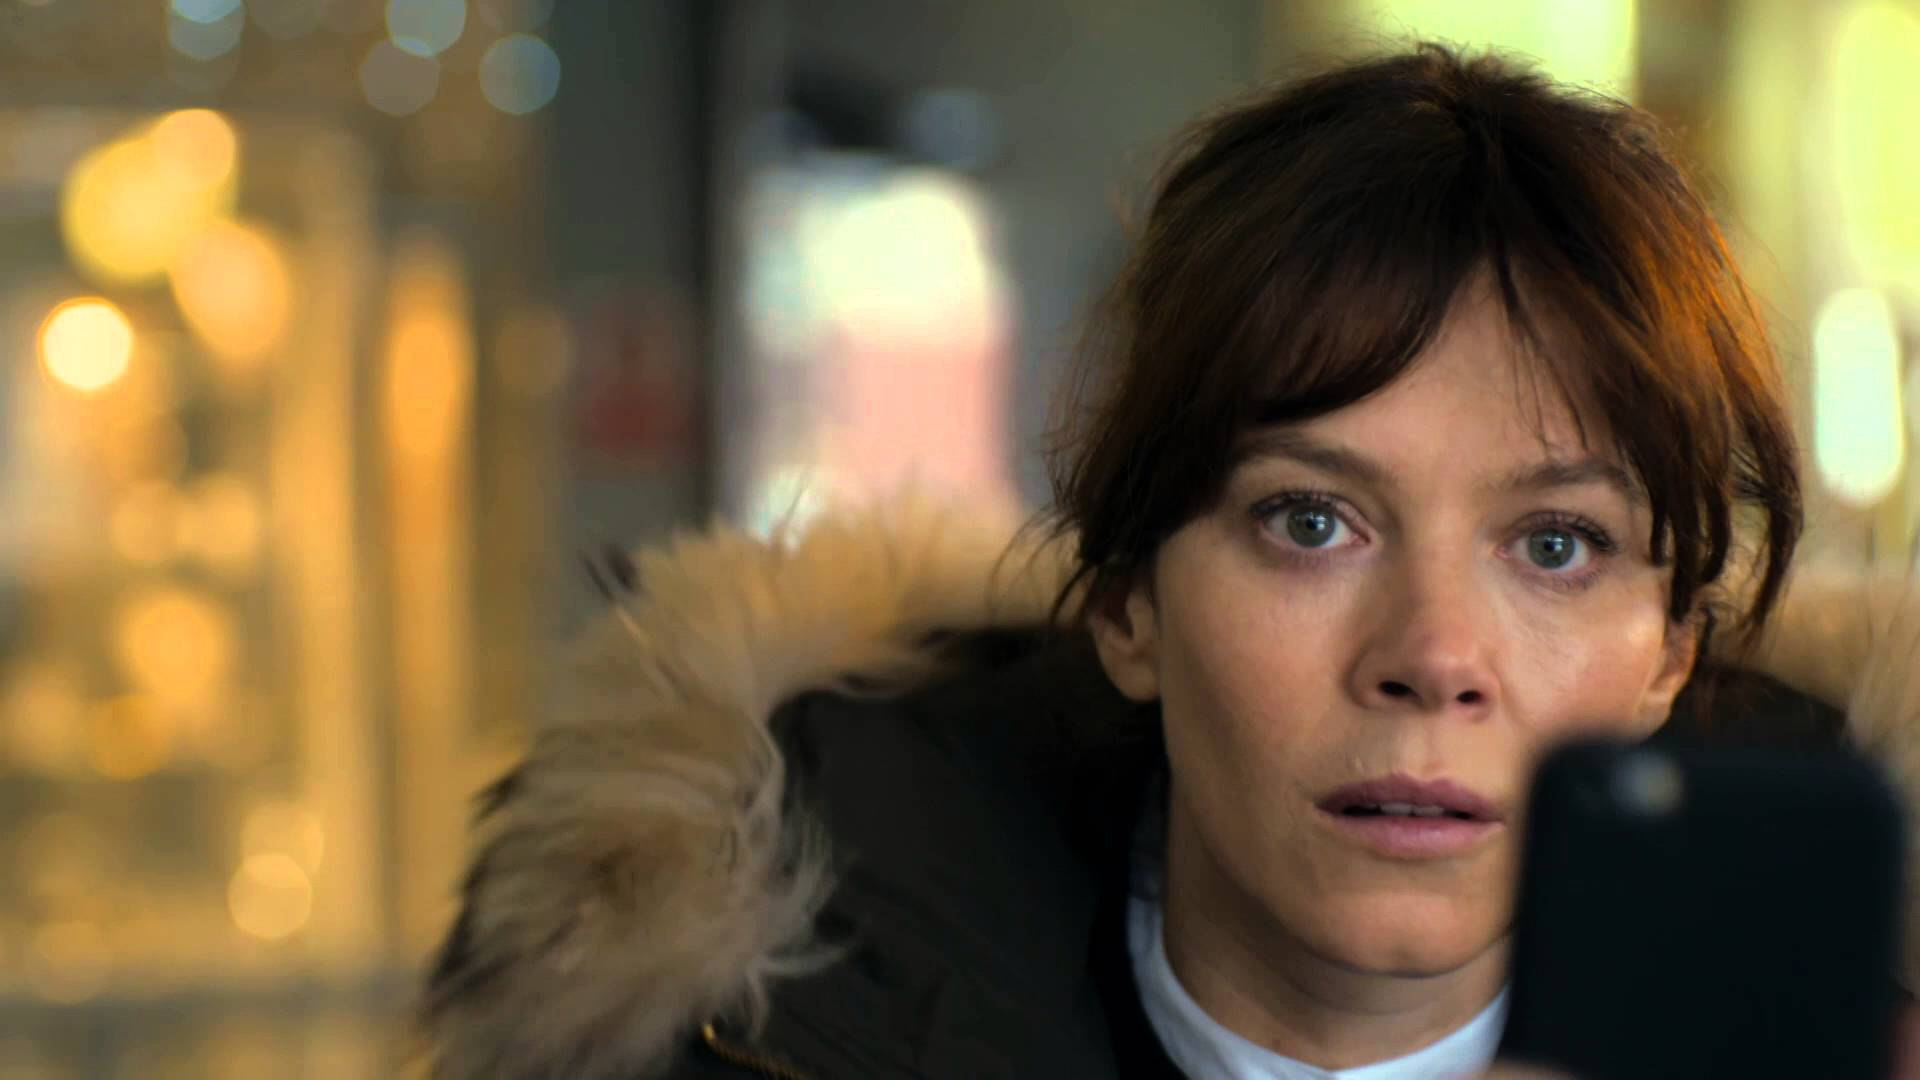 Anna Friel returns as Marcella as ITV confirms a second series of the dark crime drama